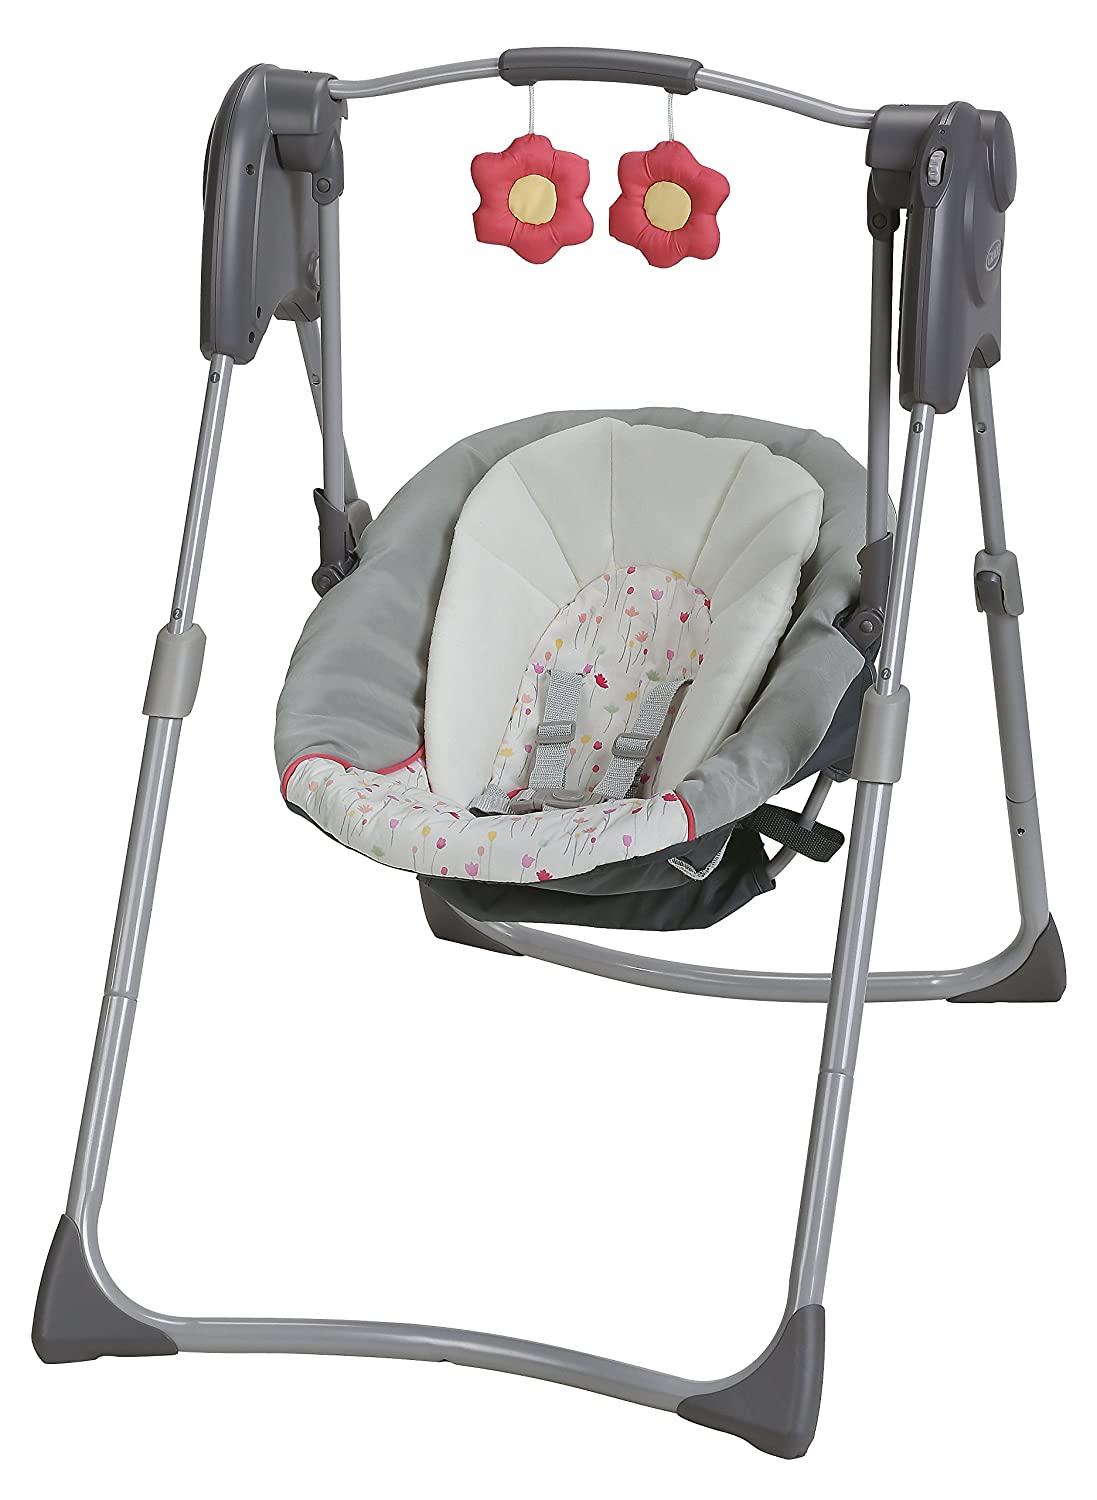 Graco Slim Spaces Compact Baby Swing, Linus 2001385